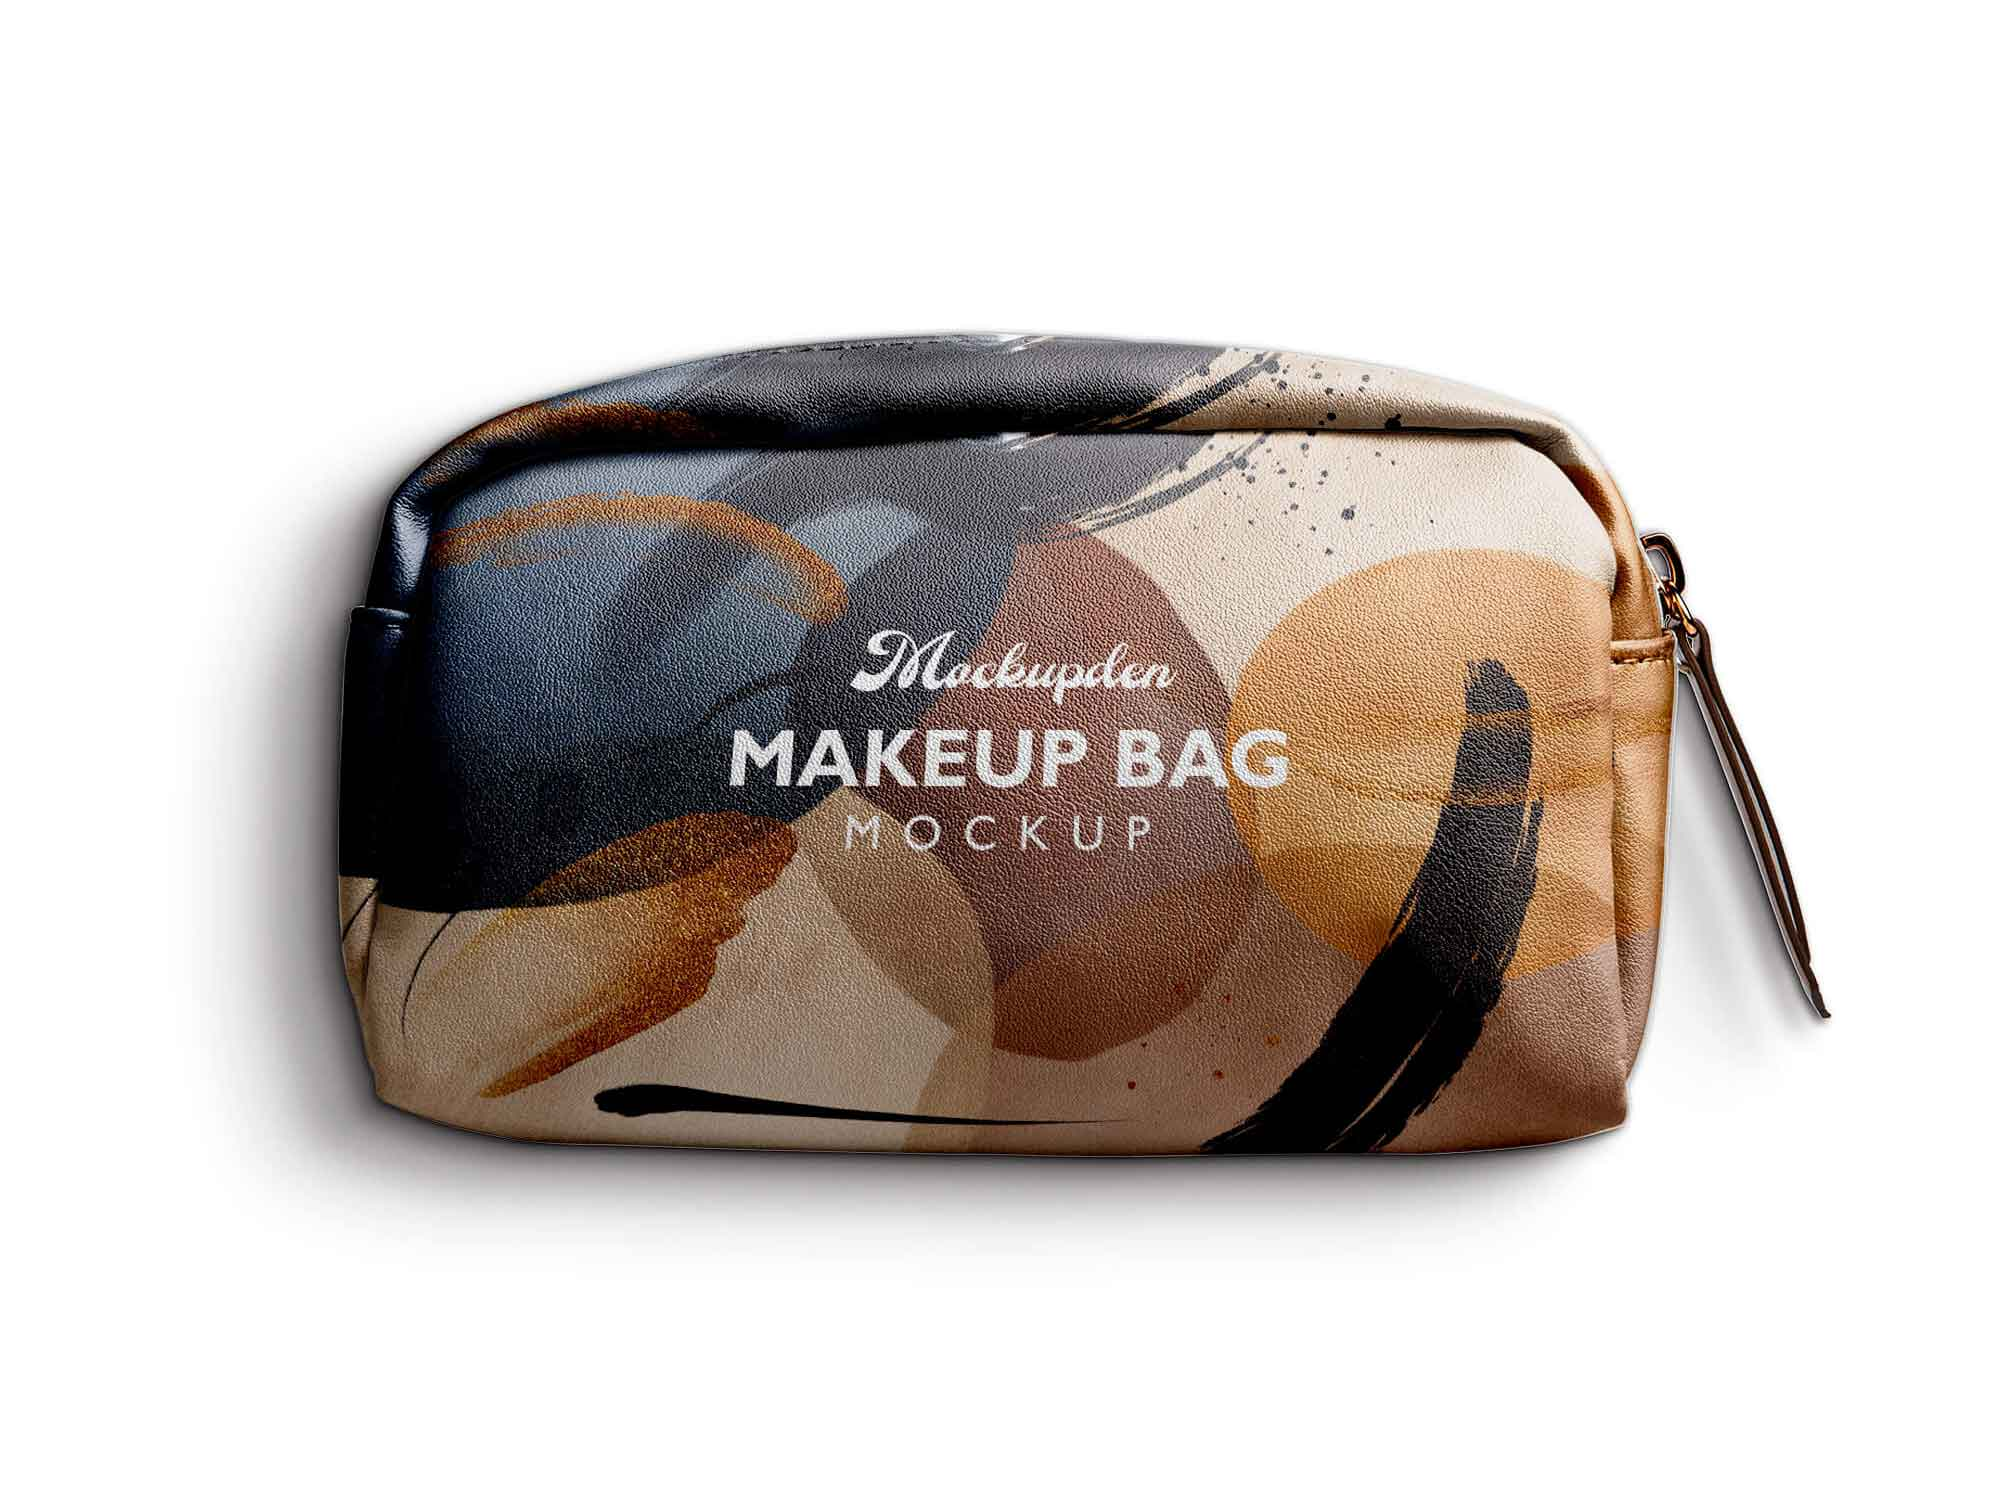 This free has clean and impressive looks to give an amazing branding. Free Makeup Bag Mockup Psd